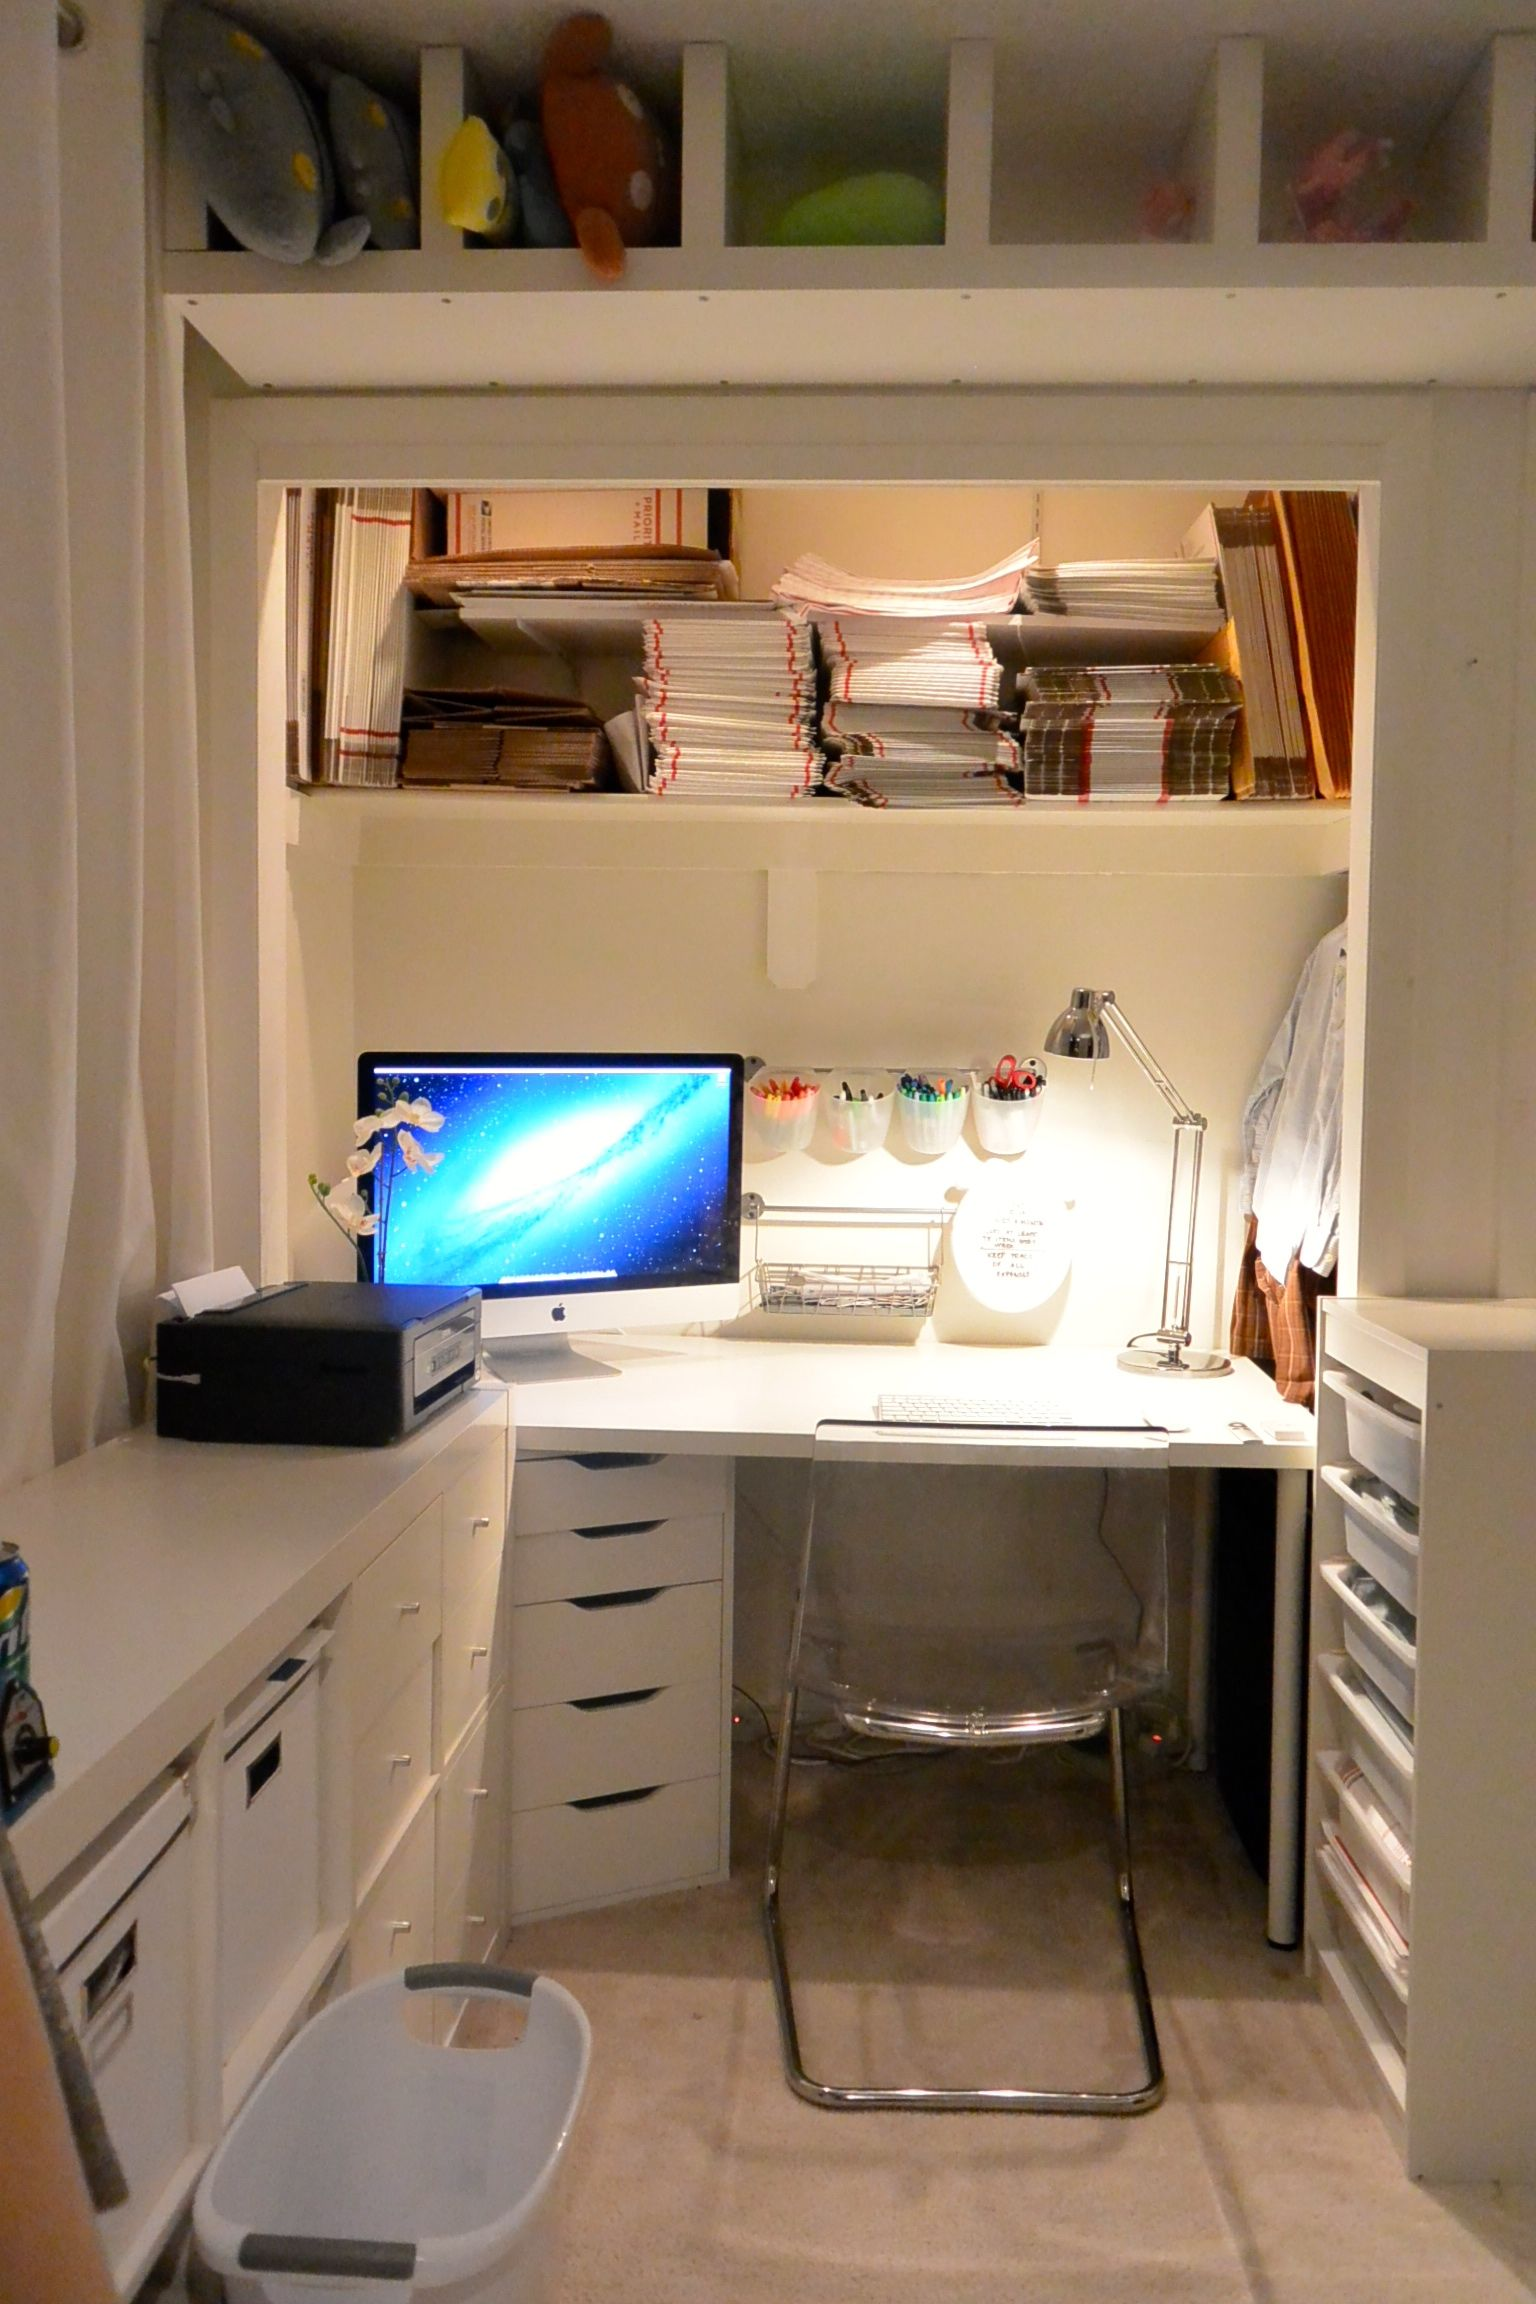 My ebay home office room - Small office setup ideas ...